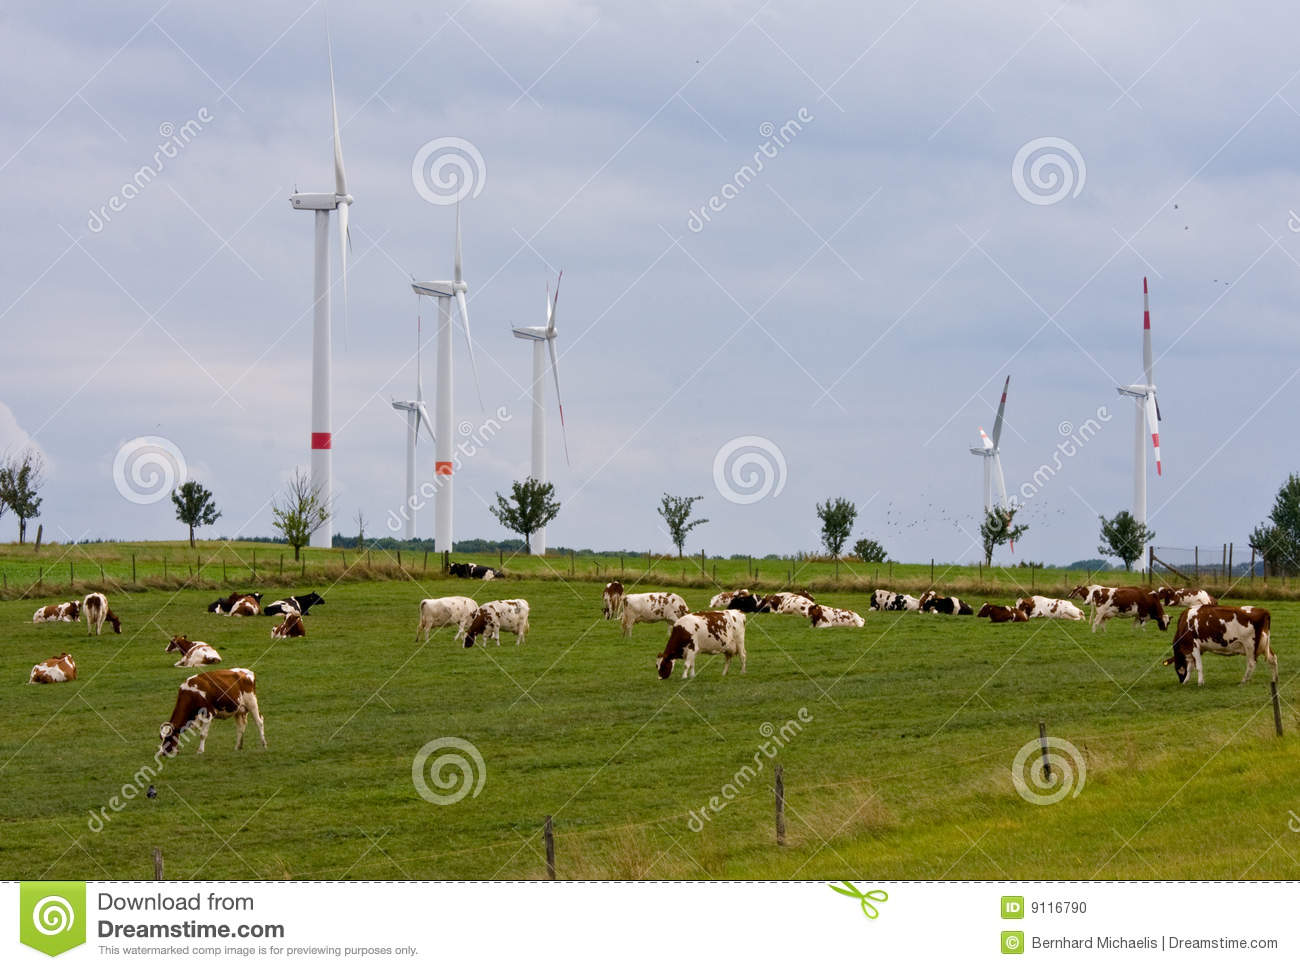 Wind power and organic grass fed cows